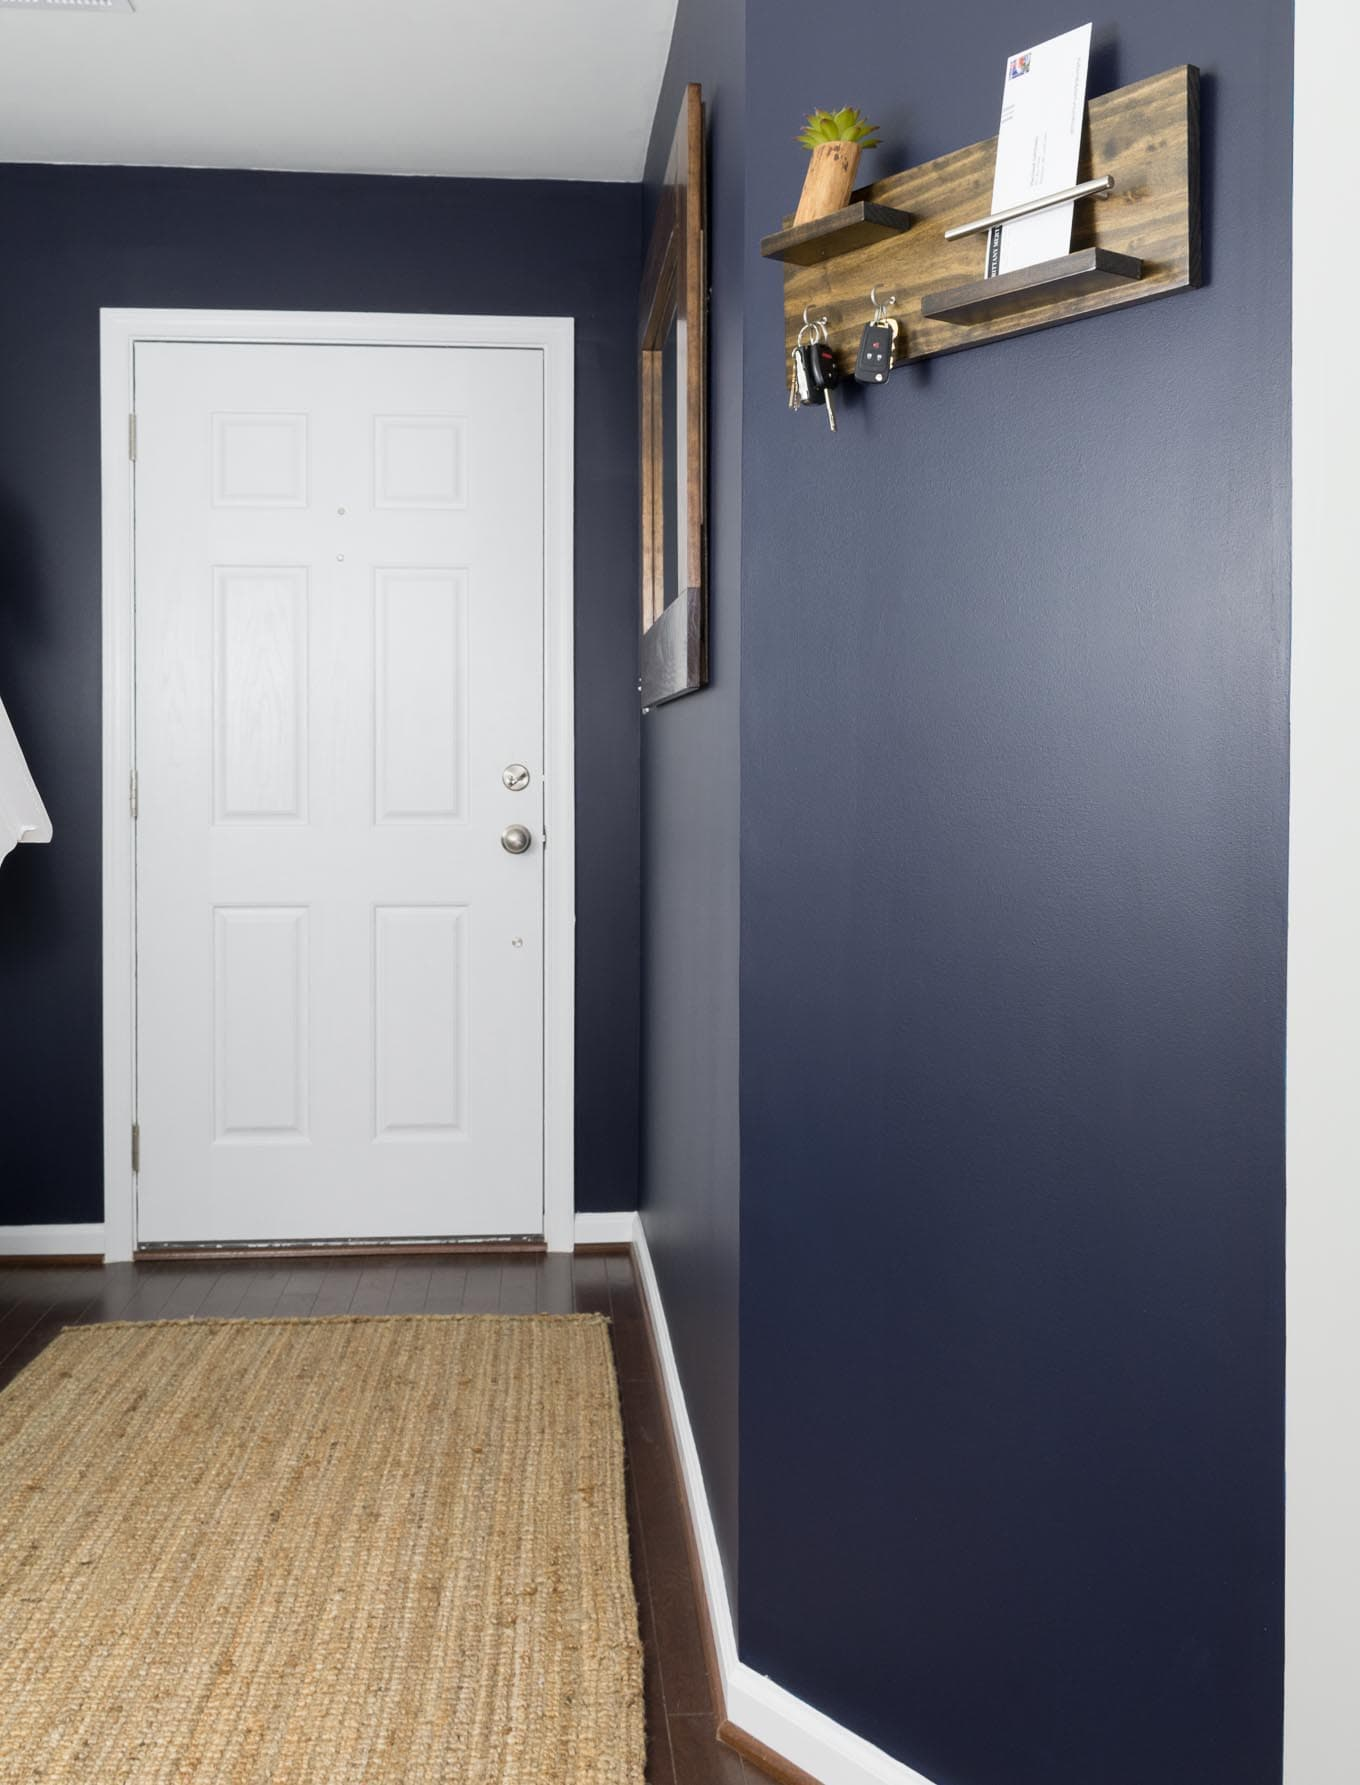 Check out this small and modern navy entryway makeover using Sherwin-Williams paint in Anchors Aweigh and Repose Gray.